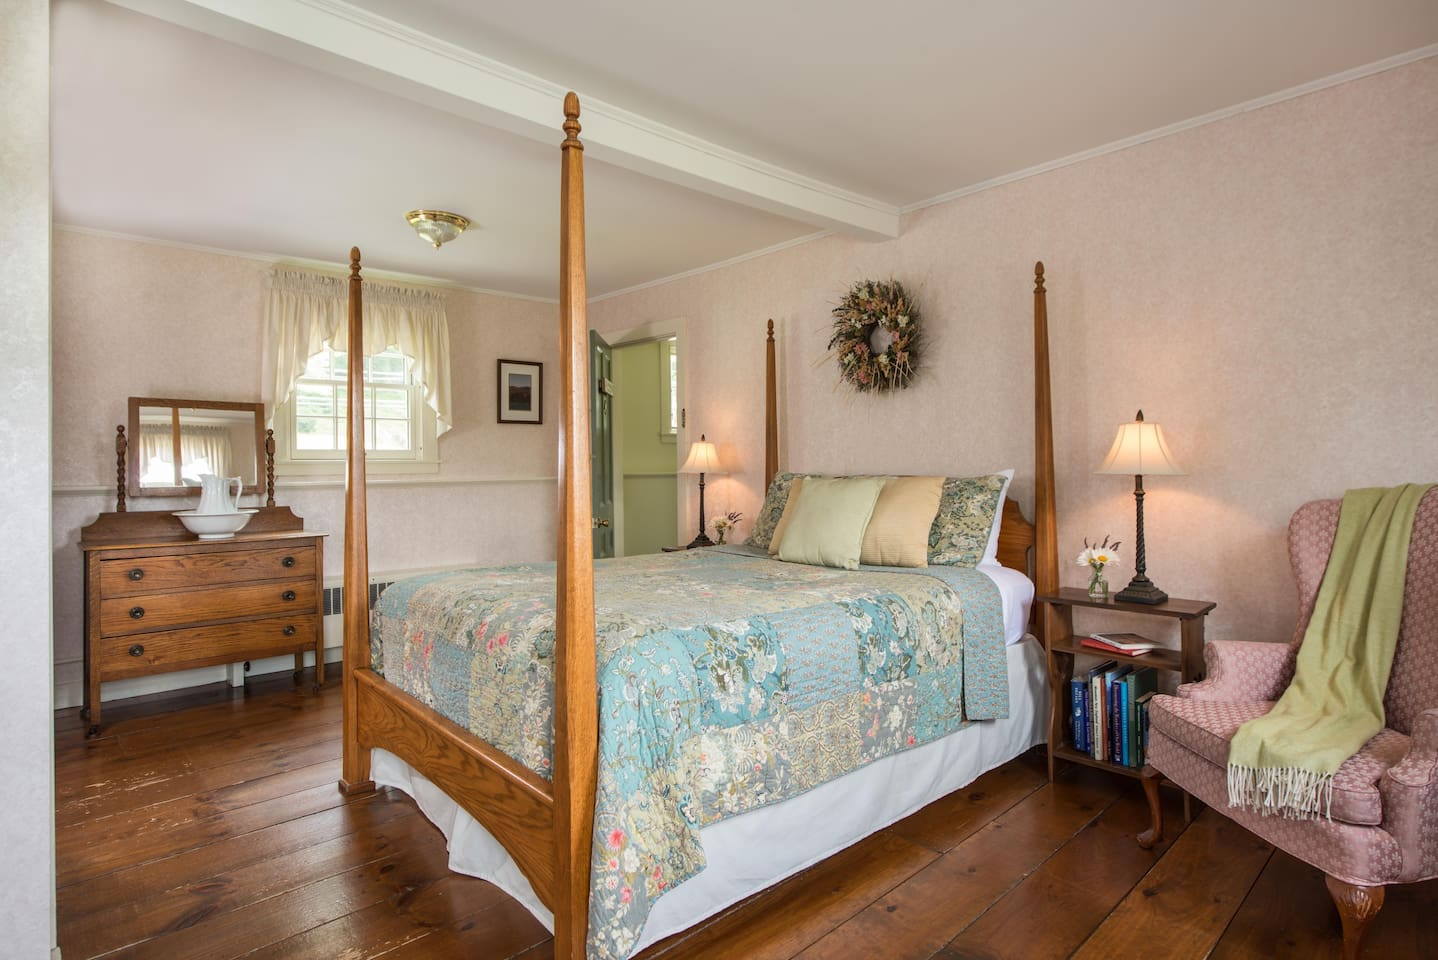 With a queen size bed, sitting area and views of Mt. Mansfield.